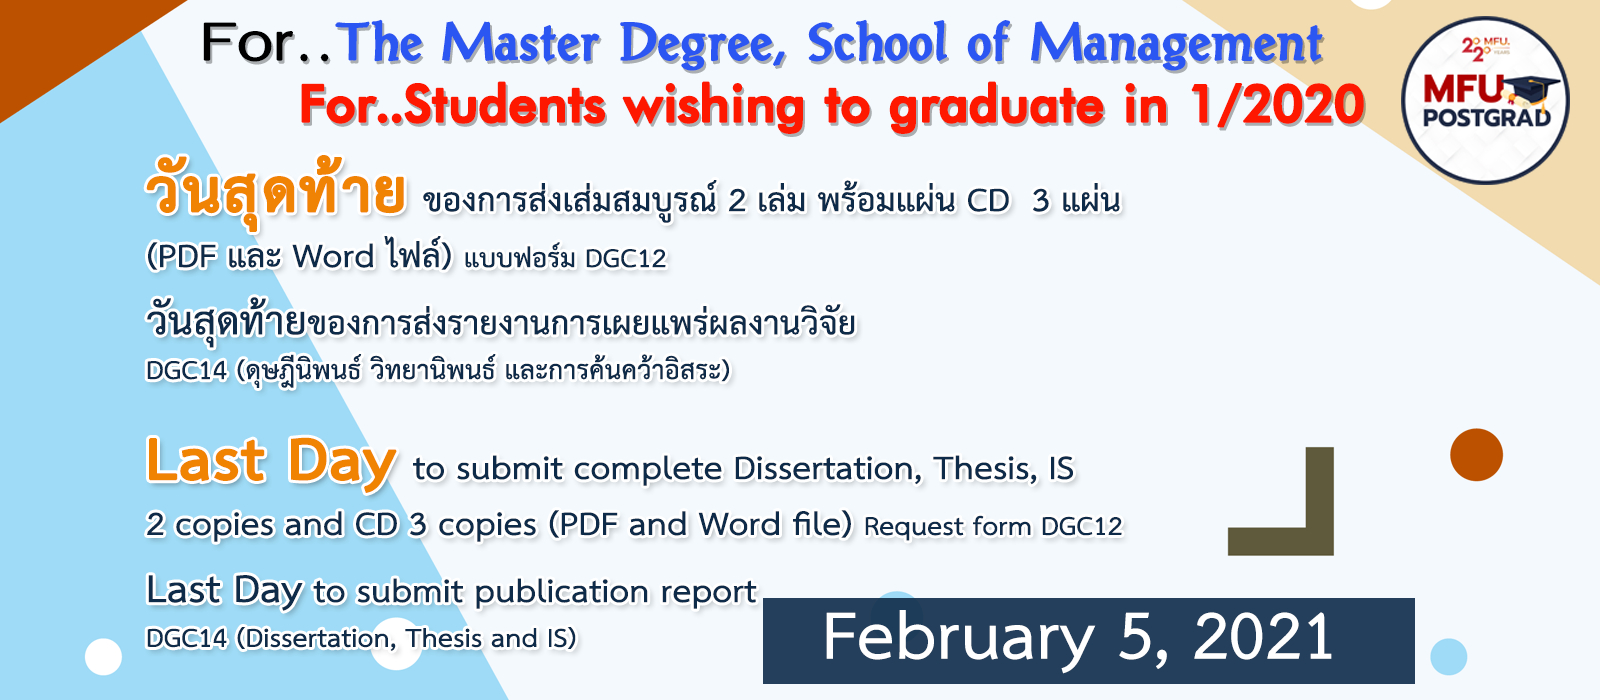 Last Day to submit complete Dissertation, Thesis, IS (DGC 12) 1/2020 (For..The Master Degree, School of management)